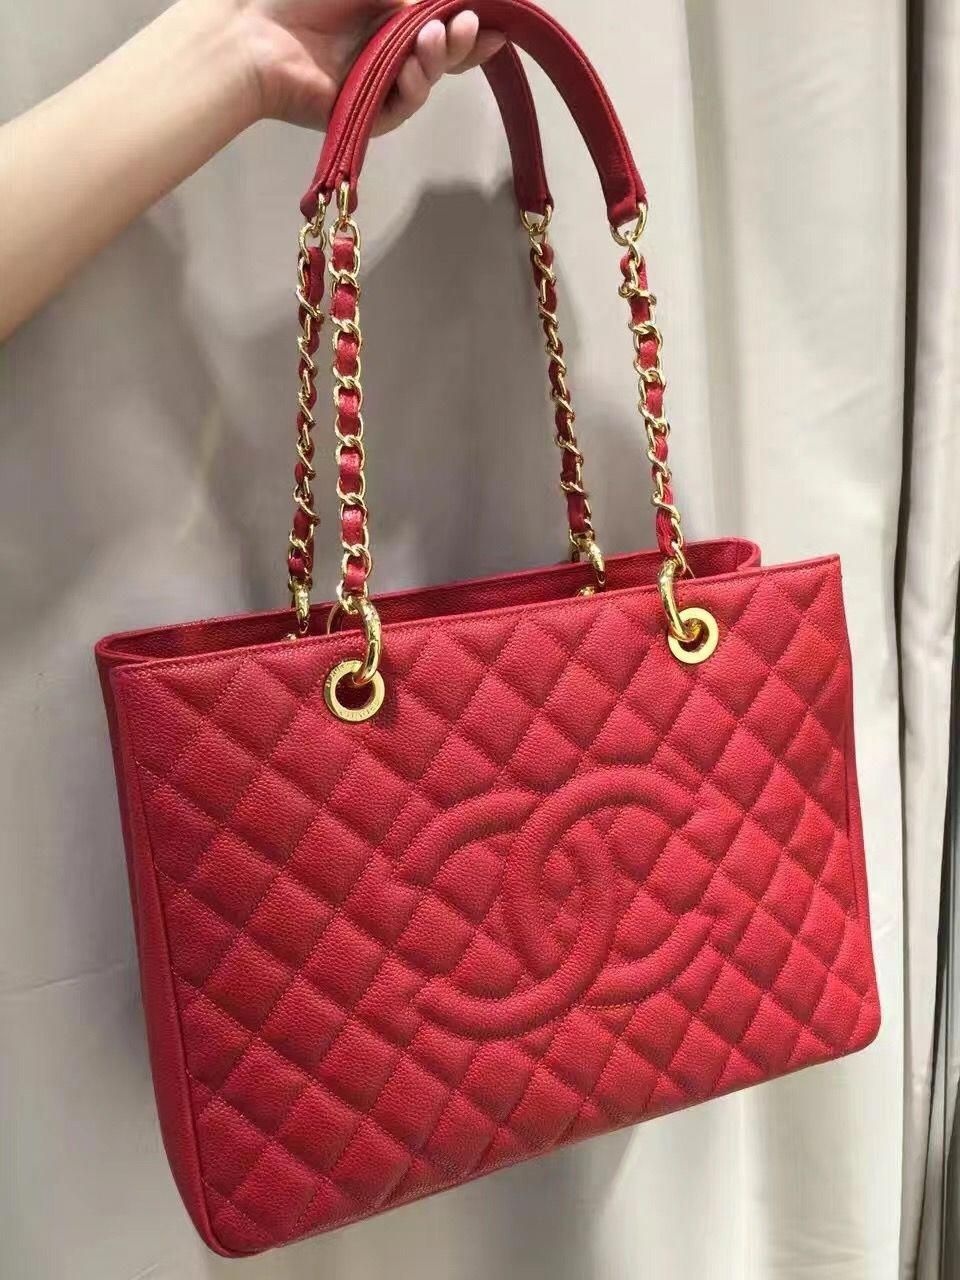 7d99ef6168a5 Authentic Quality 1 1 Mirror Replica Chanel Grand Shopping Tote Red Caviar  Silver Hardware A50995